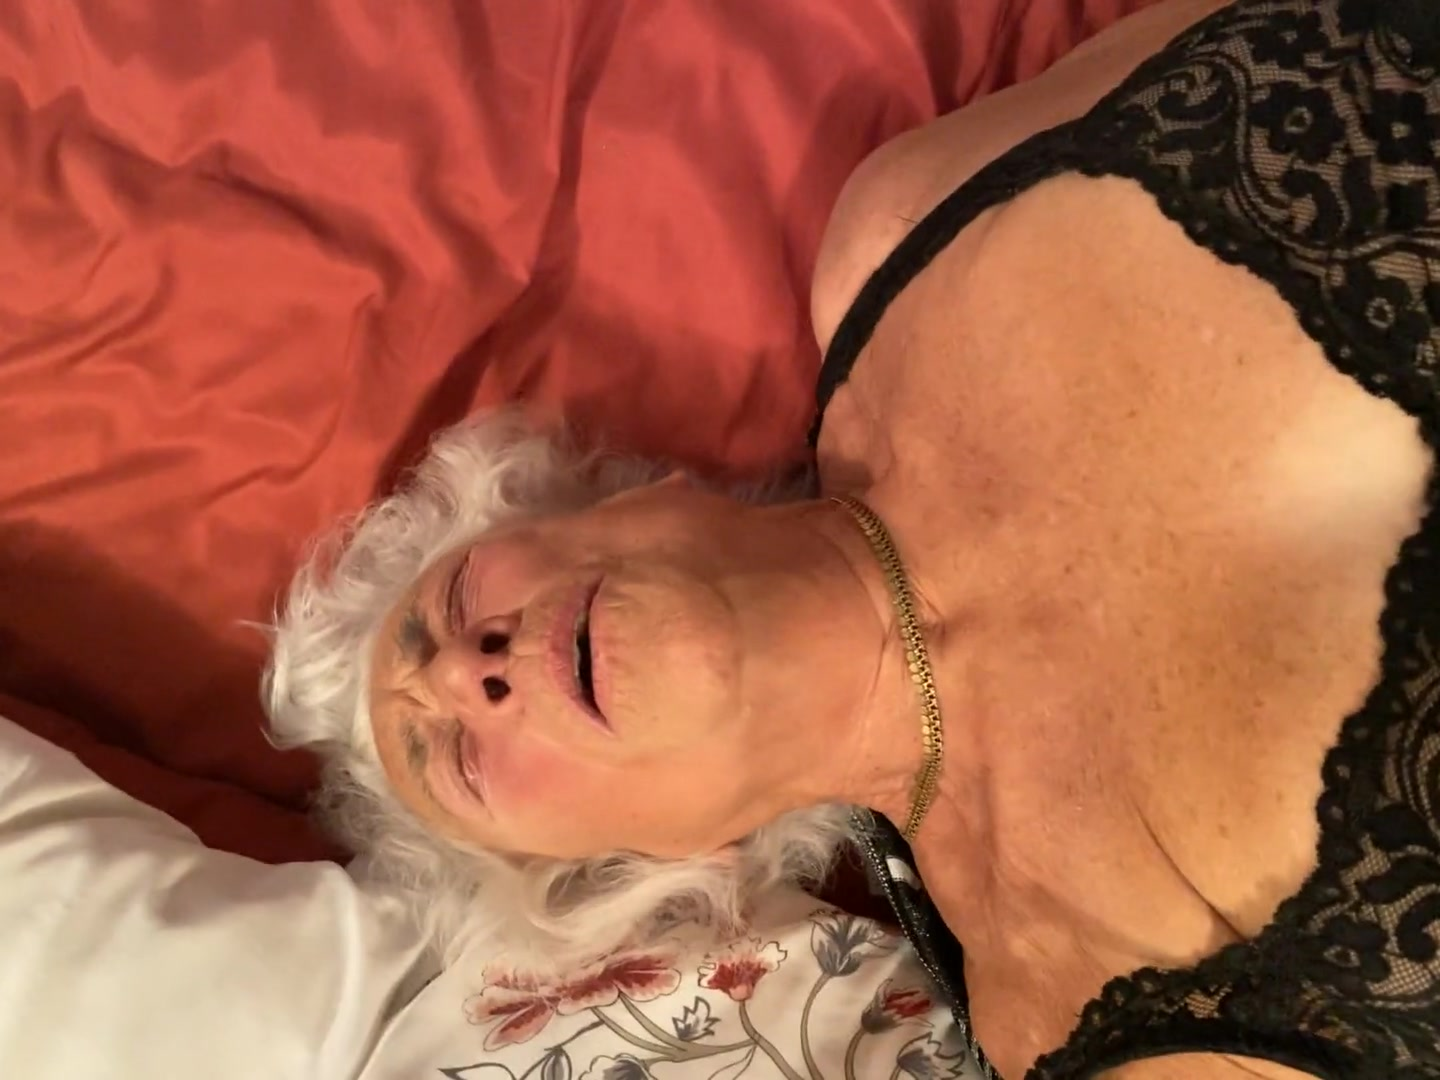 Amateur Old Granny Anal